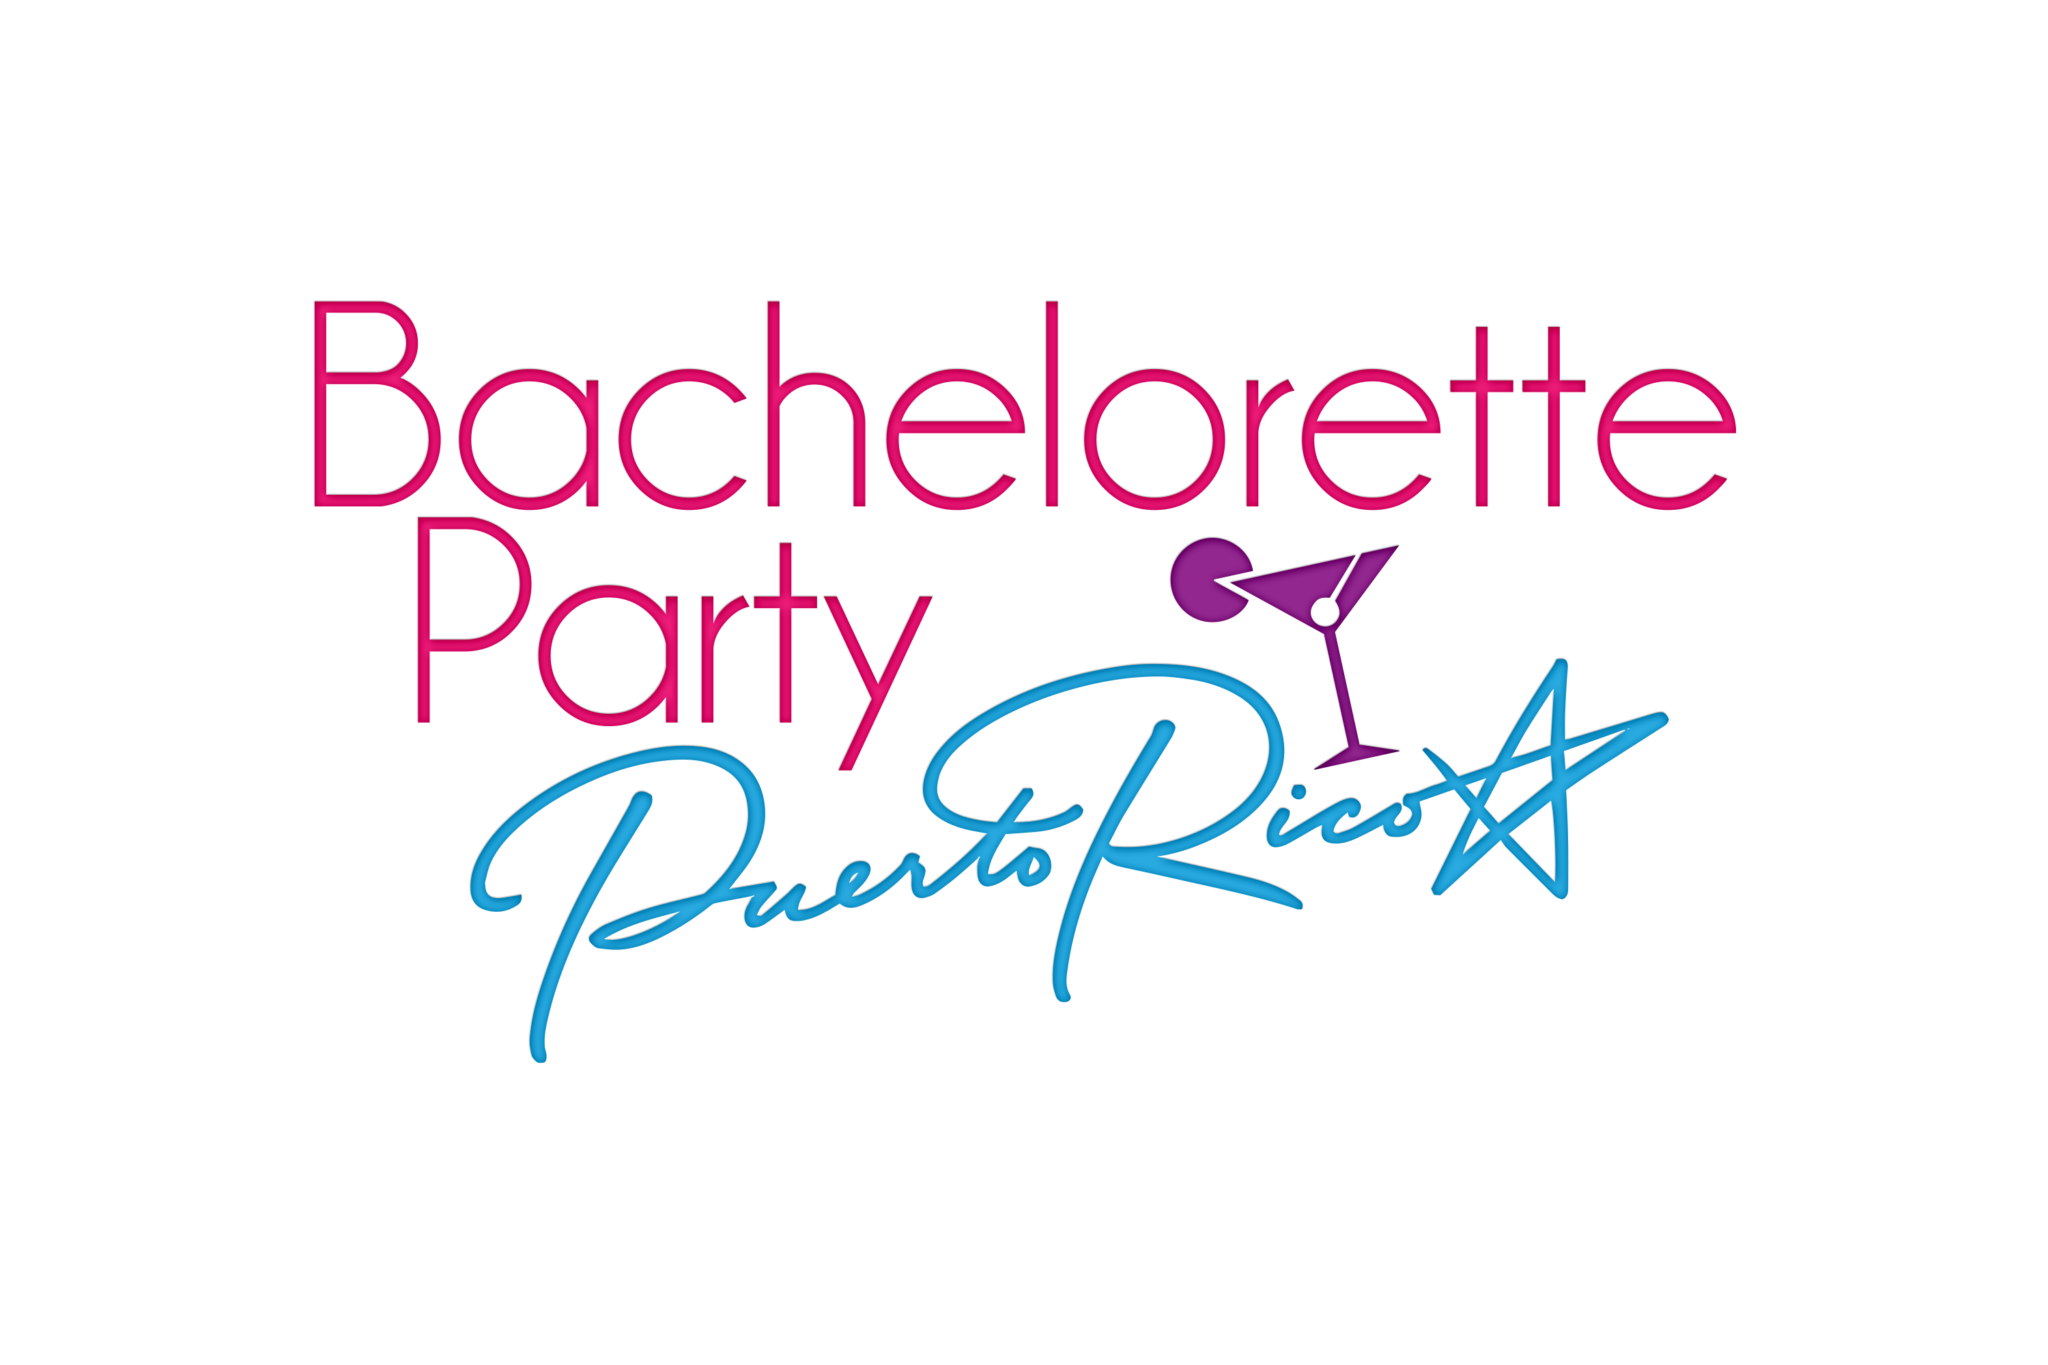 bachelorette party puerto rico logo